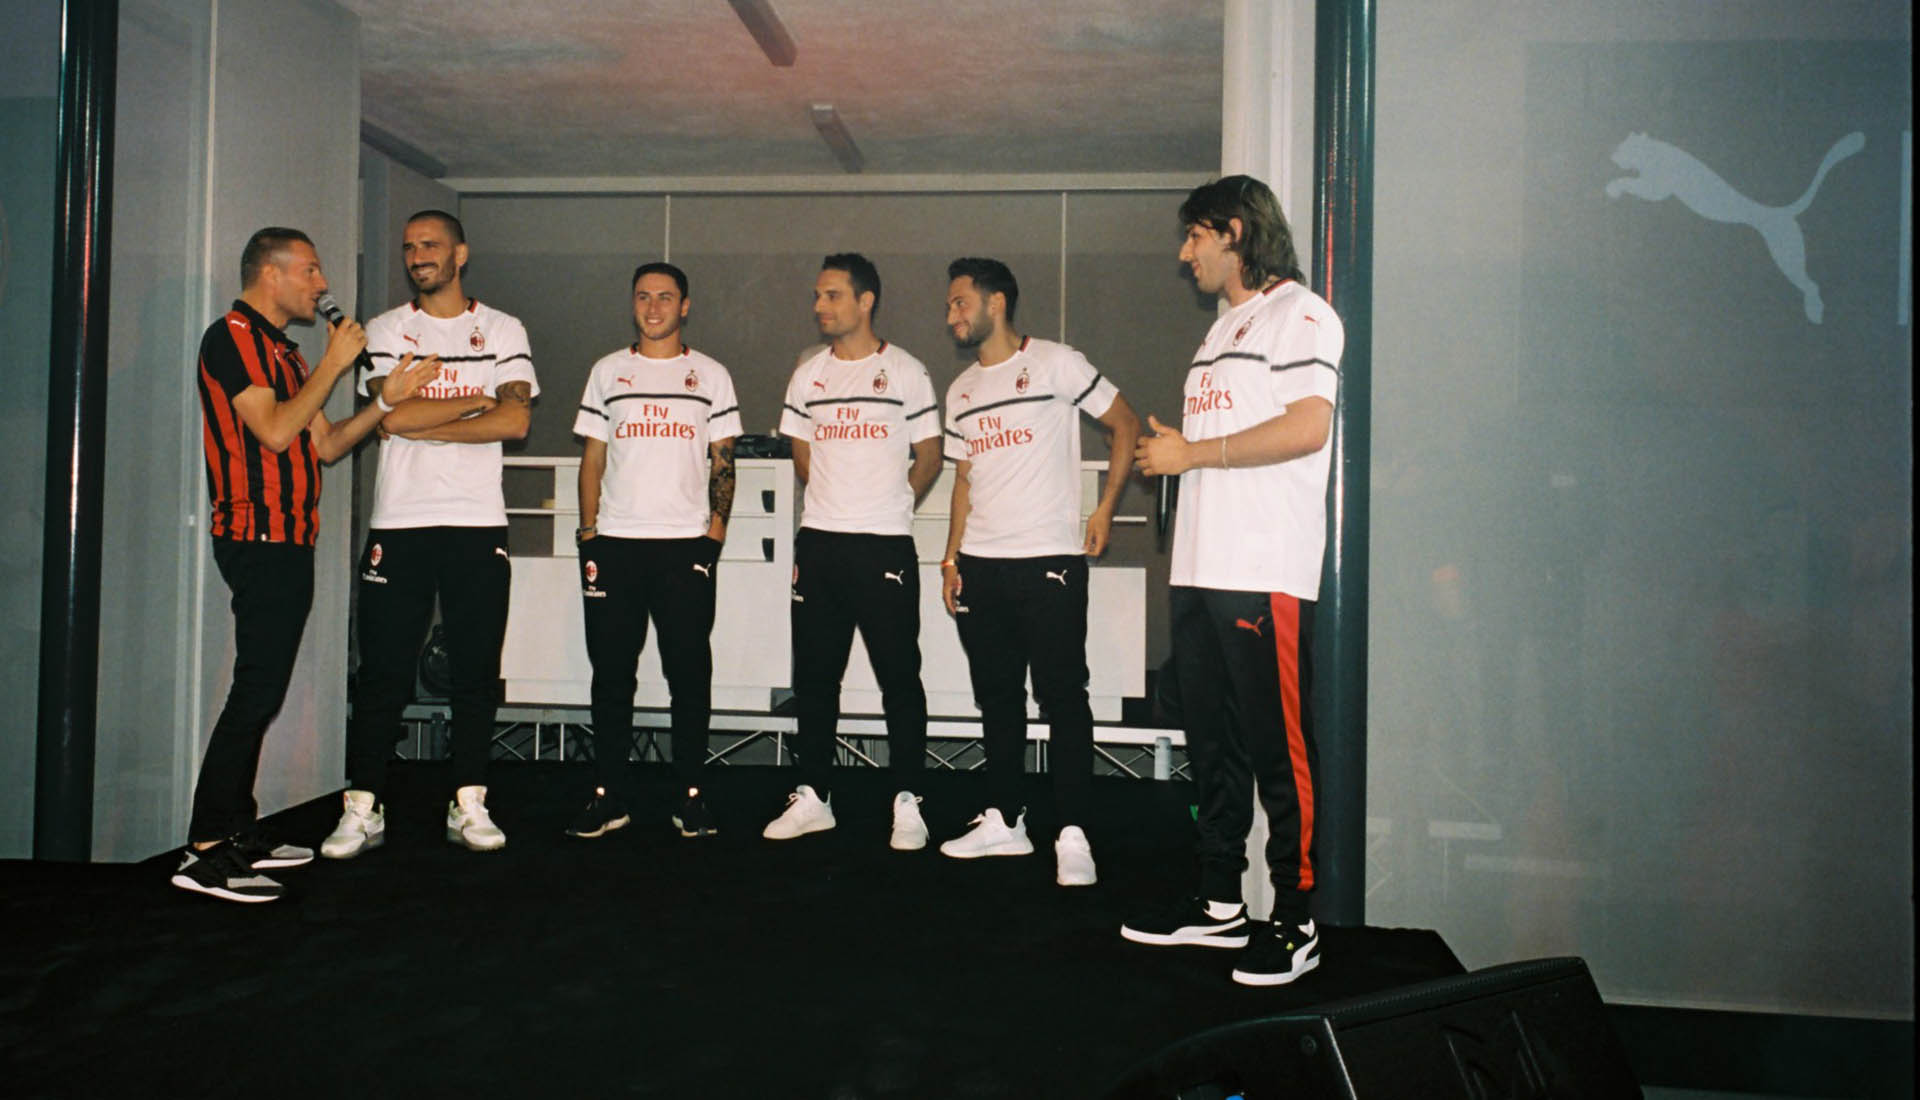 e707329bee6 AC Milan Launch 2018 19 Kits at Special Event With Puma - SoccerBible.